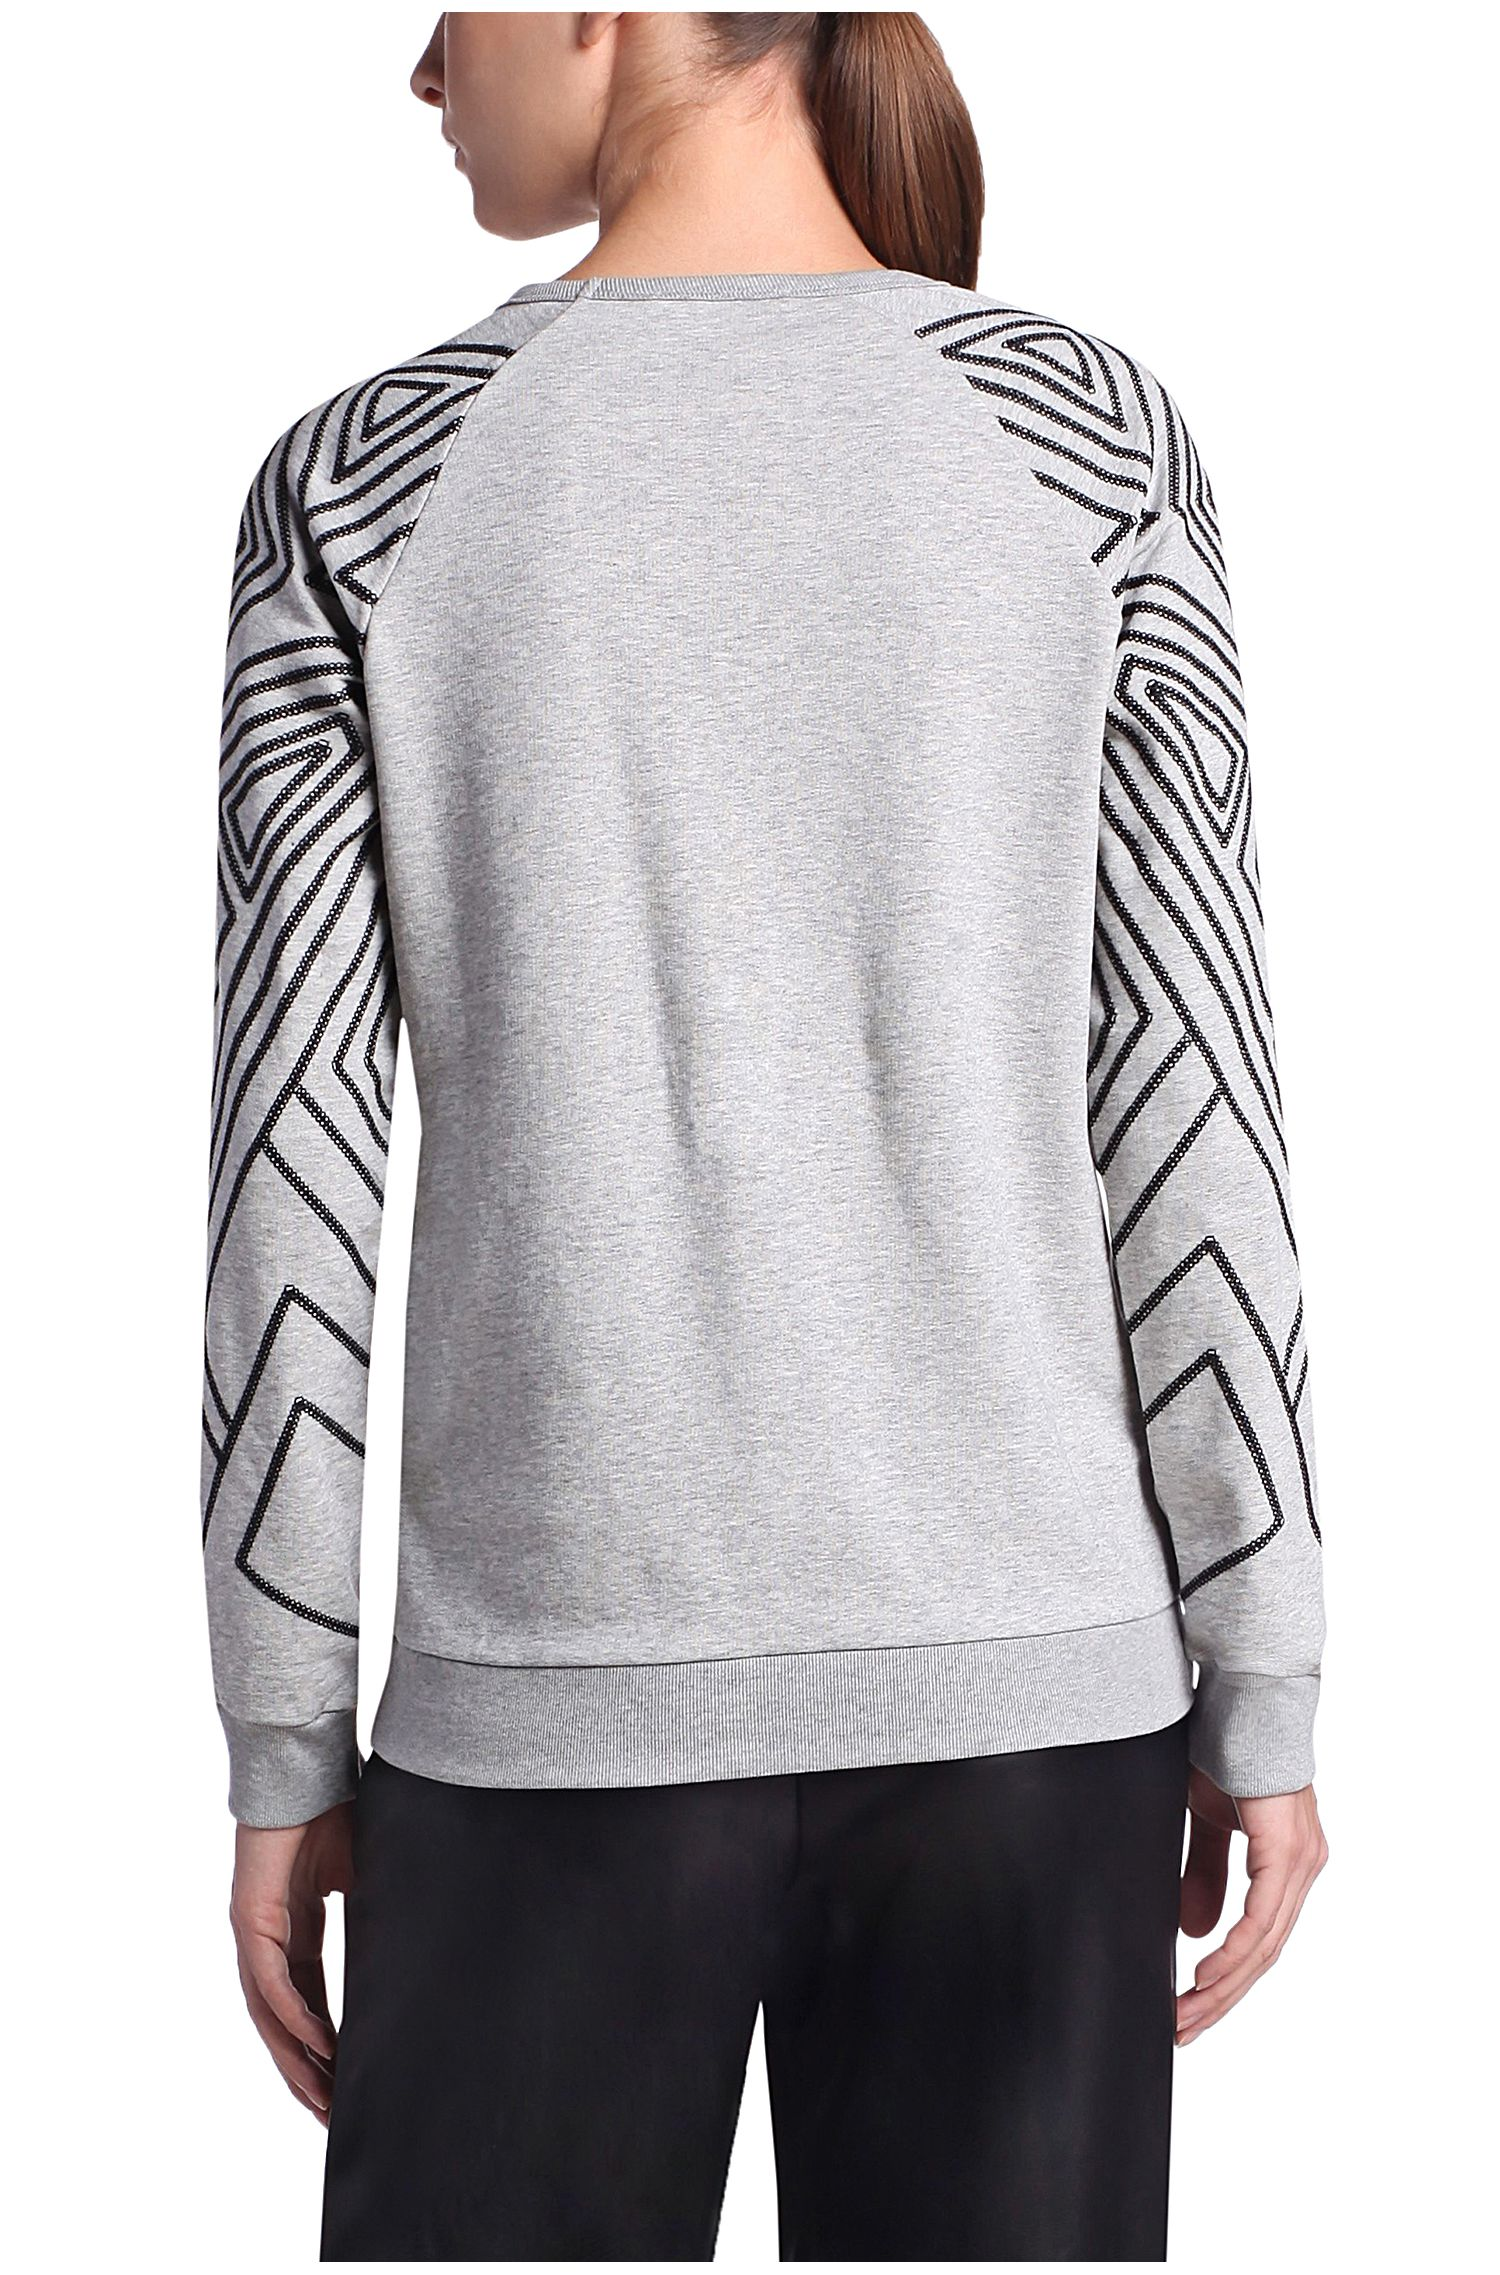 Dekorierter Regular-Fit Sweater: ´Ticonic`